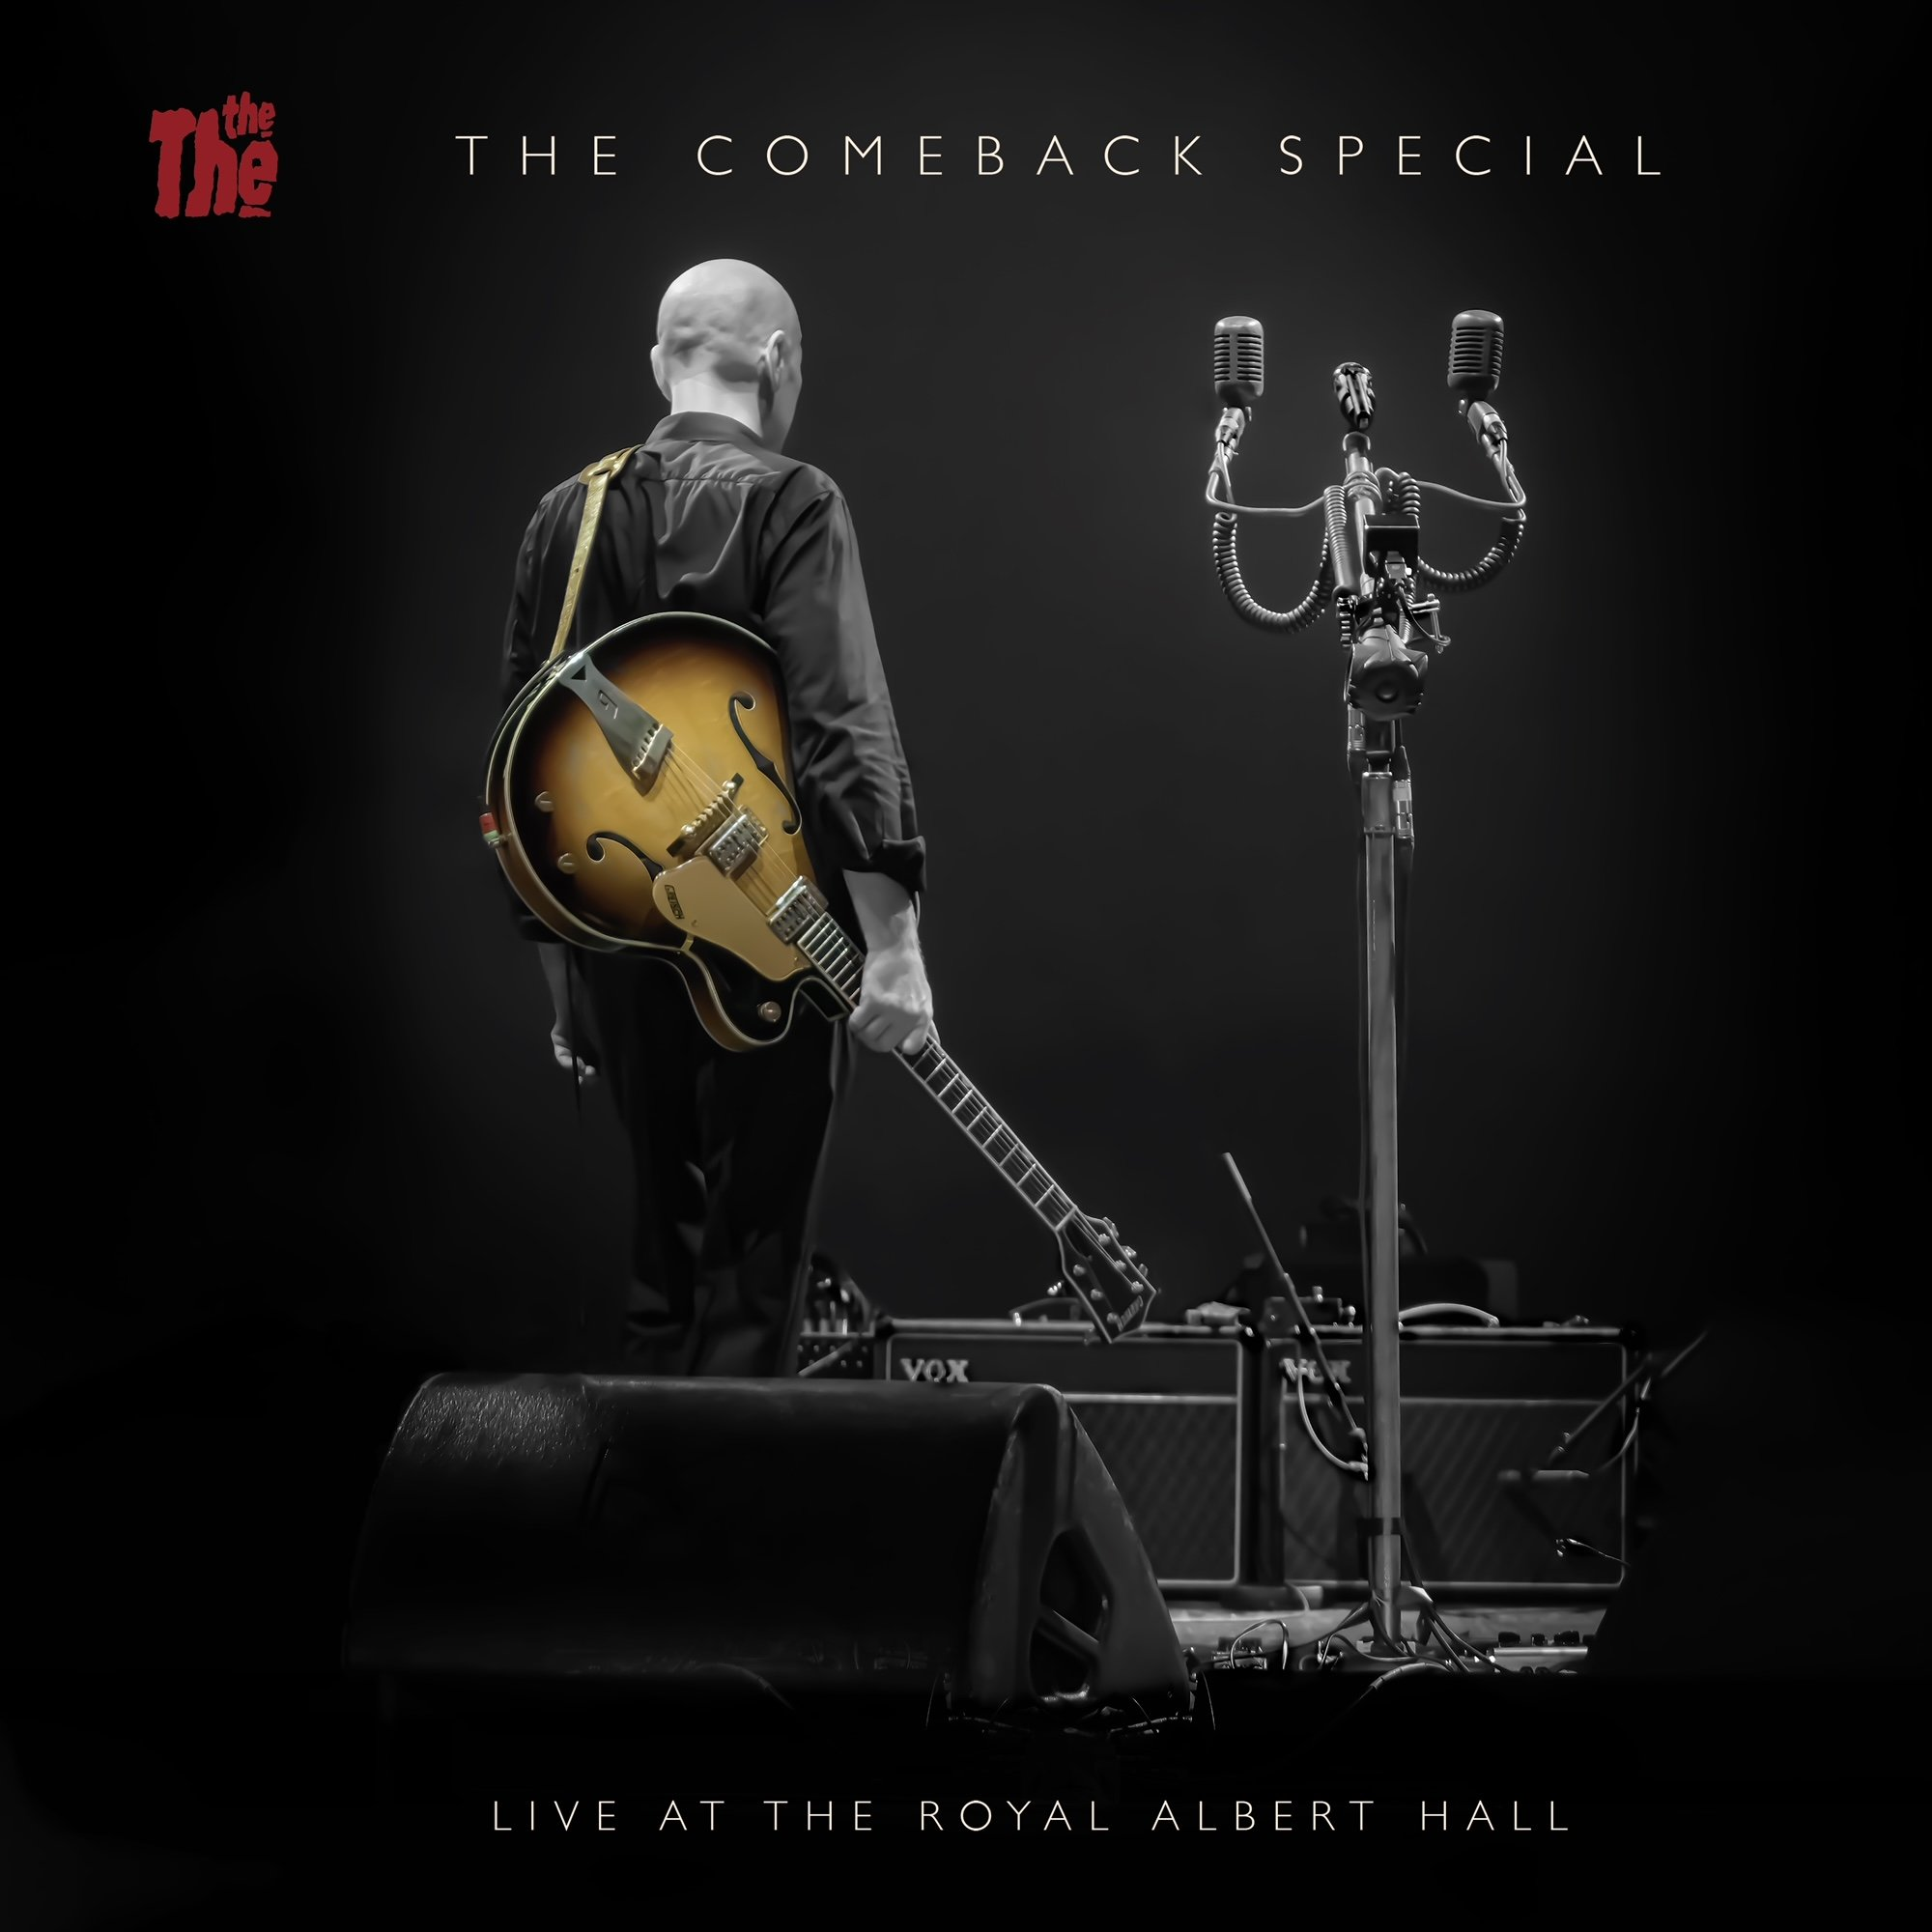 The Comeback Special - The The - Musik -  - 4029759164746 - 1. oktober 2021